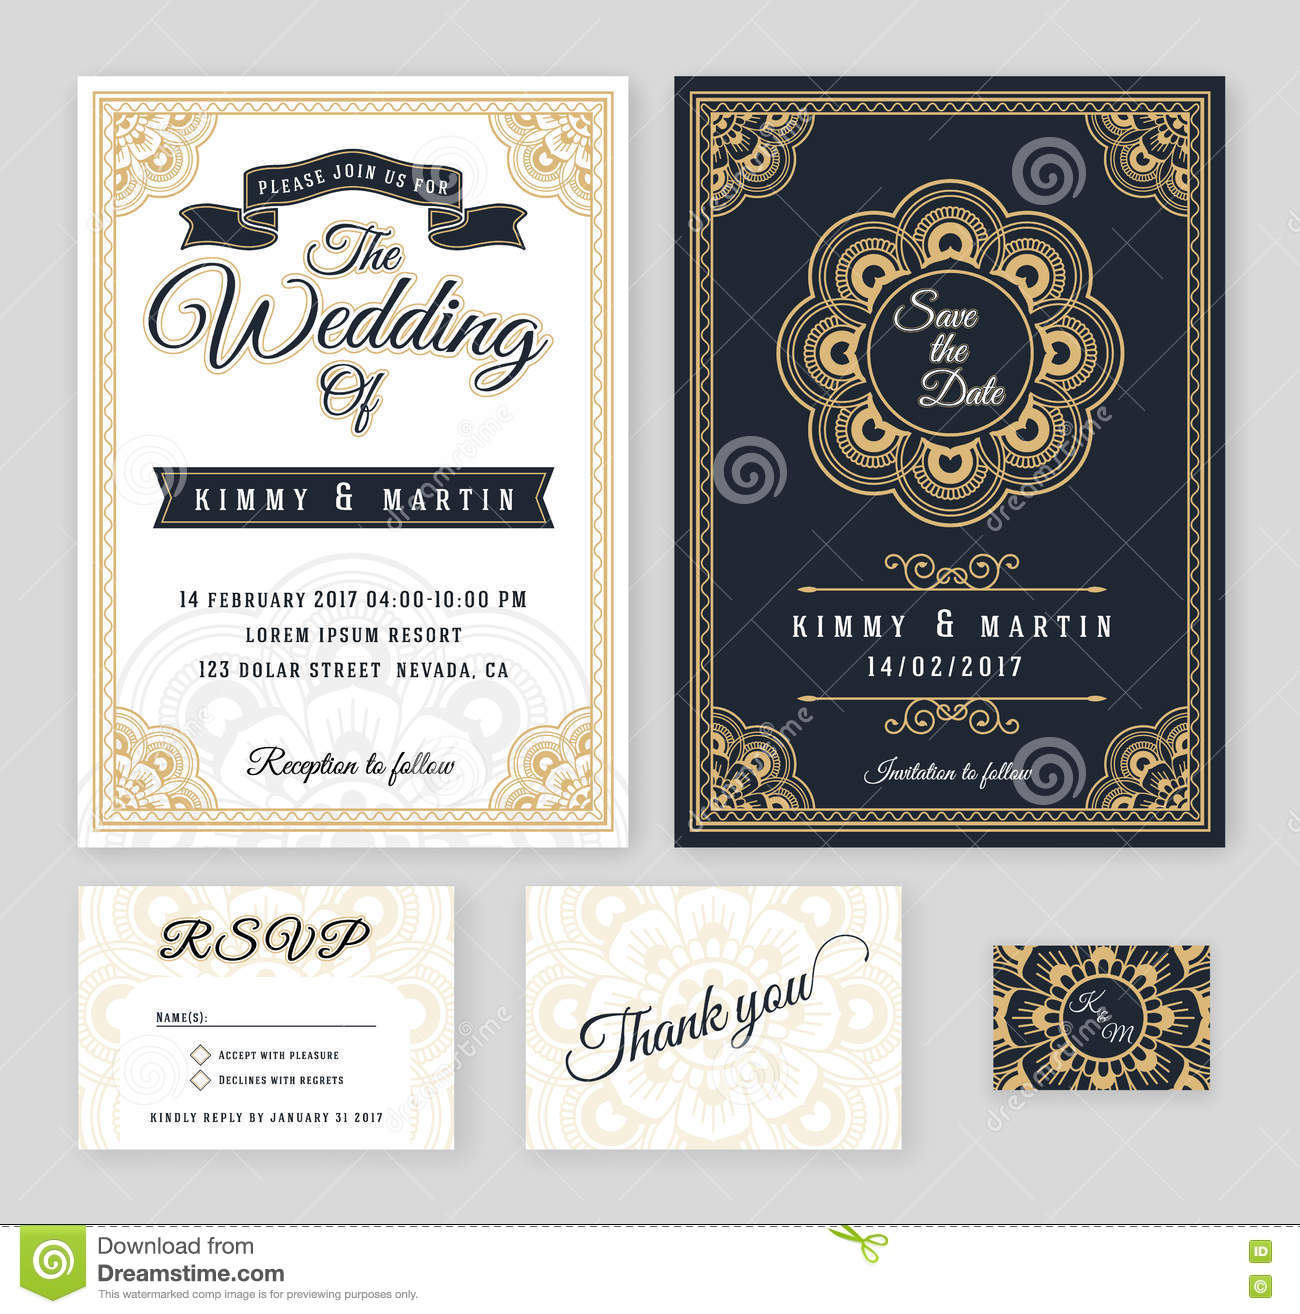 Vintage Wedding Invitation Mehndi Mandala Design Stock Vector ...